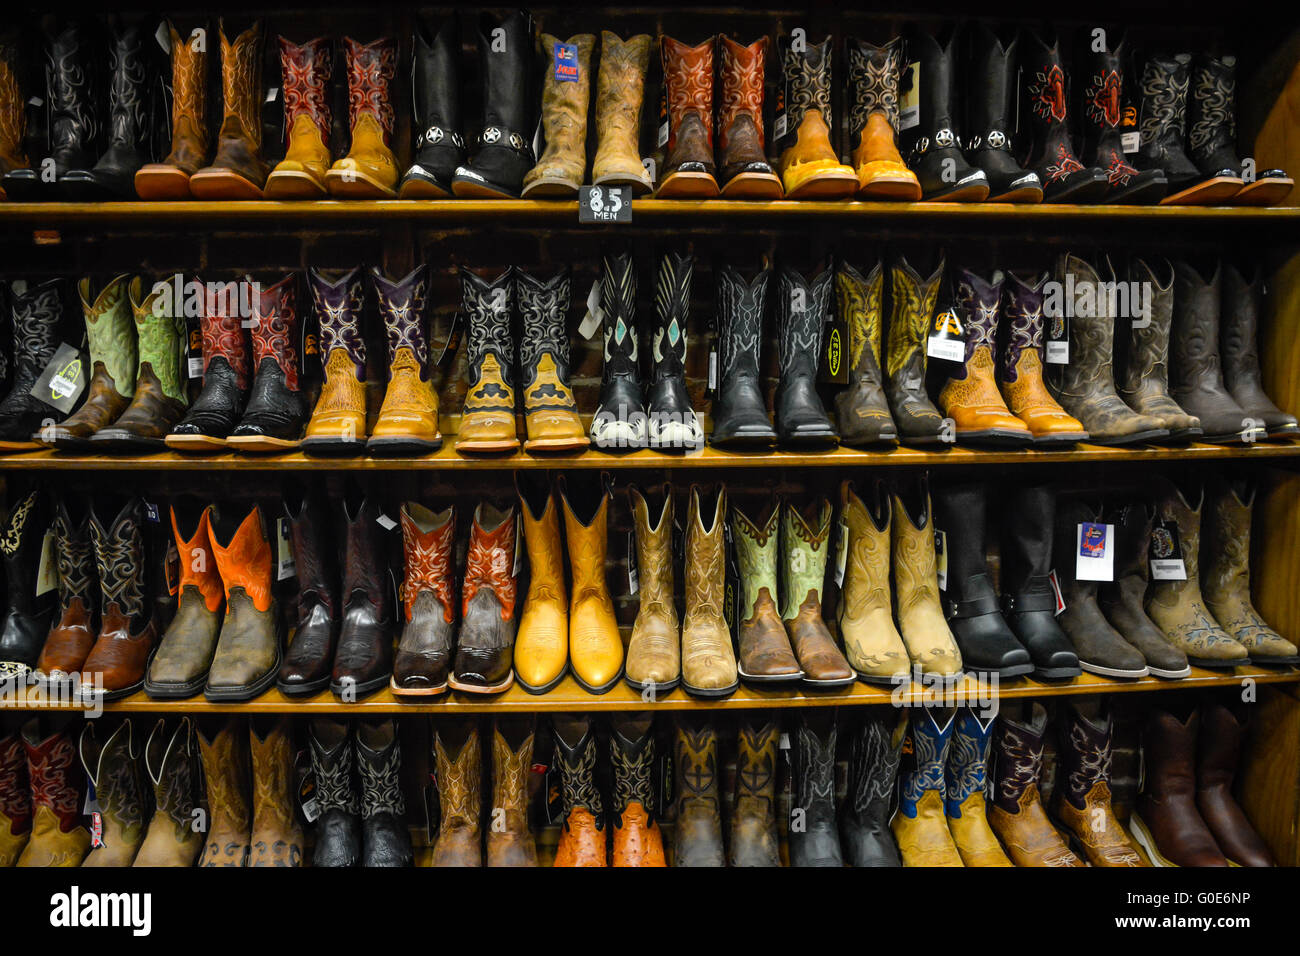 The Nashville Cowboy Boot Store Has Rows Of Unique Cowboy Boots ...